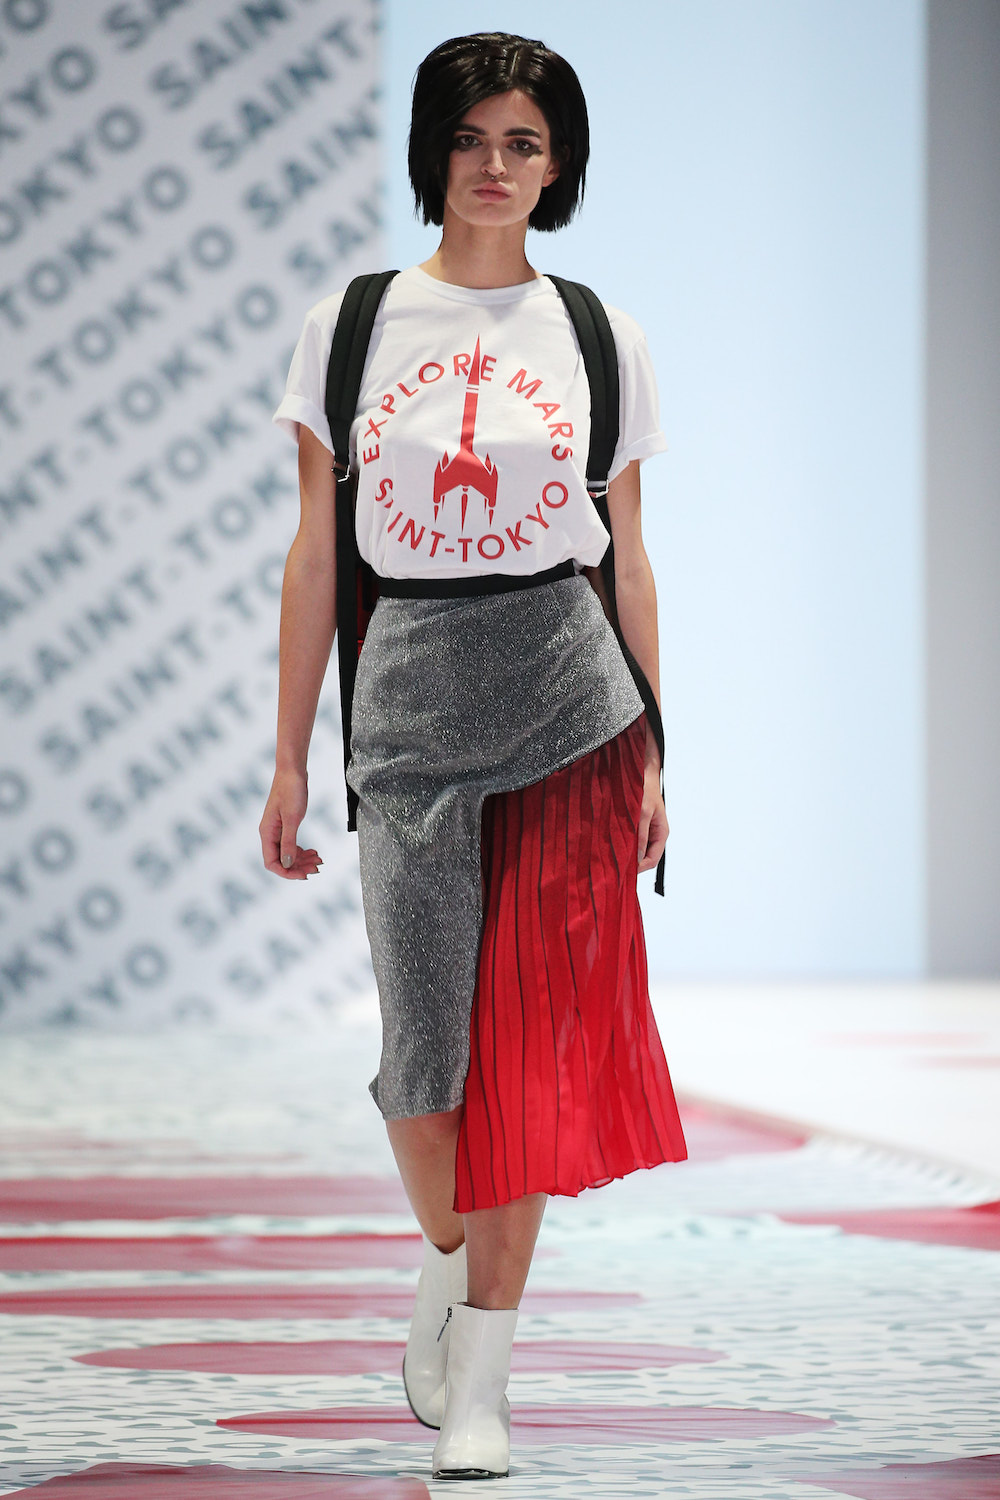 Model Sasha in a look that supports a campaign to fight AIDS in Russia